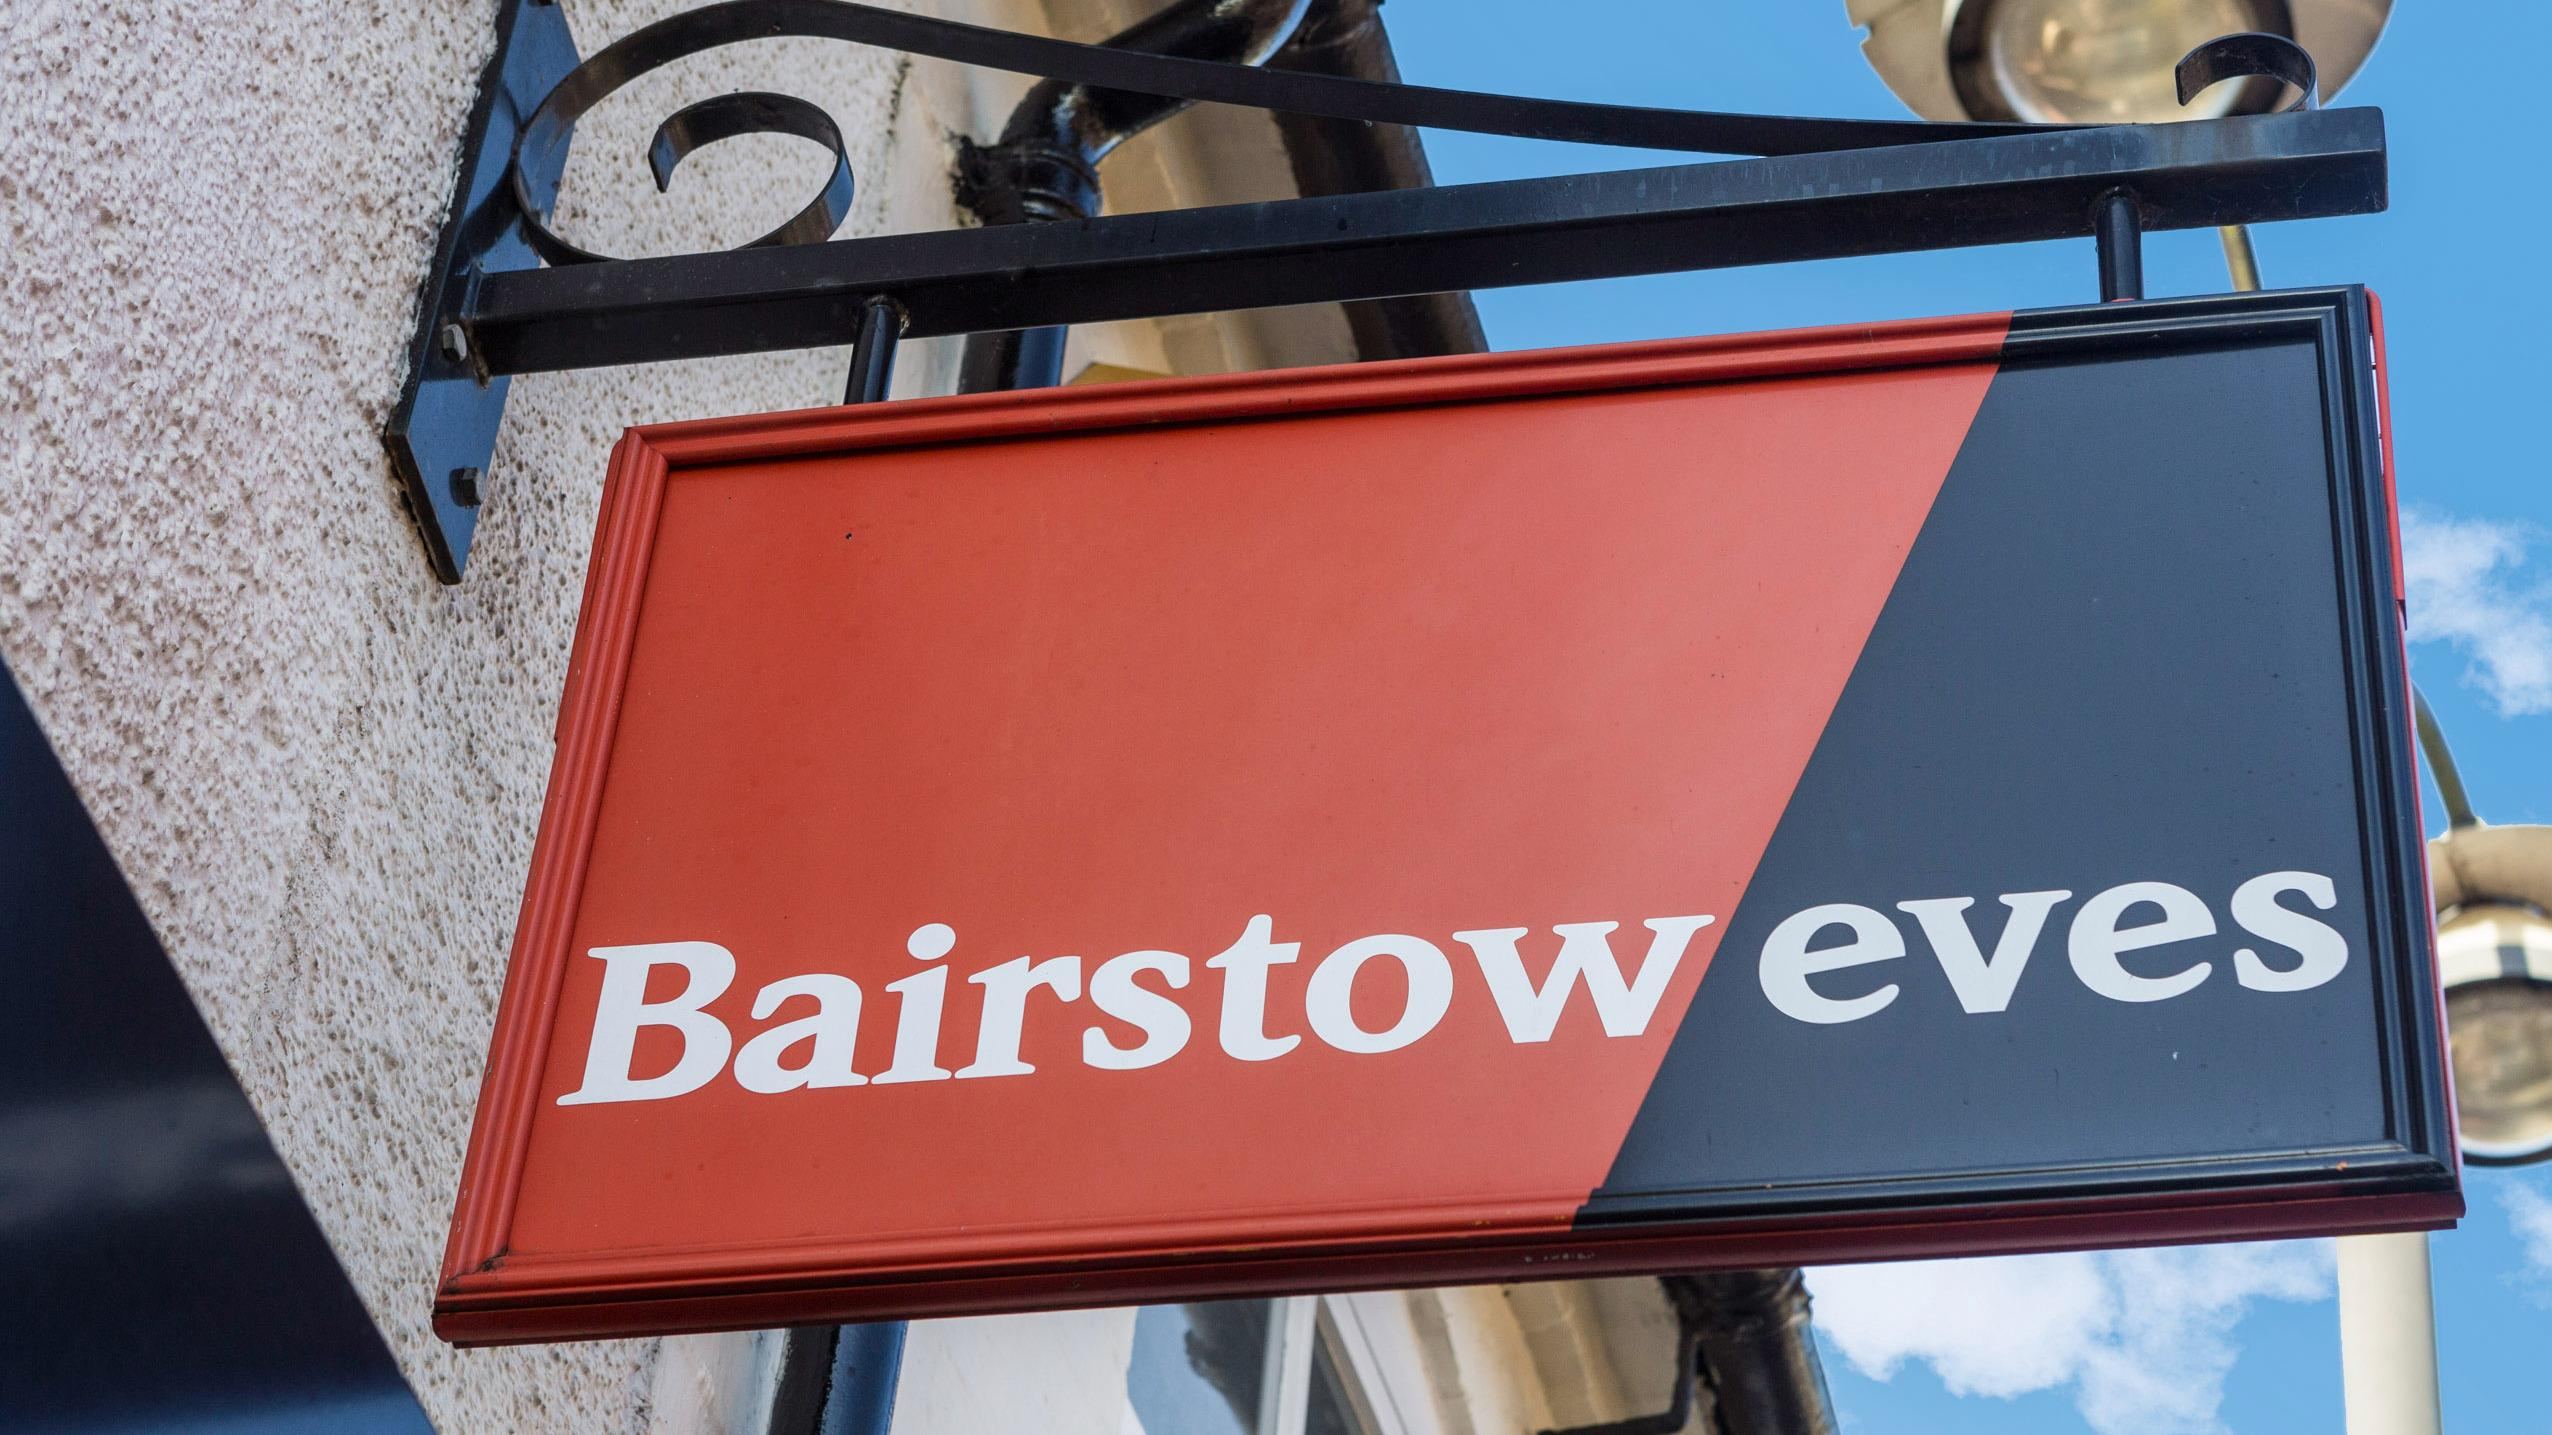 Bairstow Eves Estate Agents Carlton